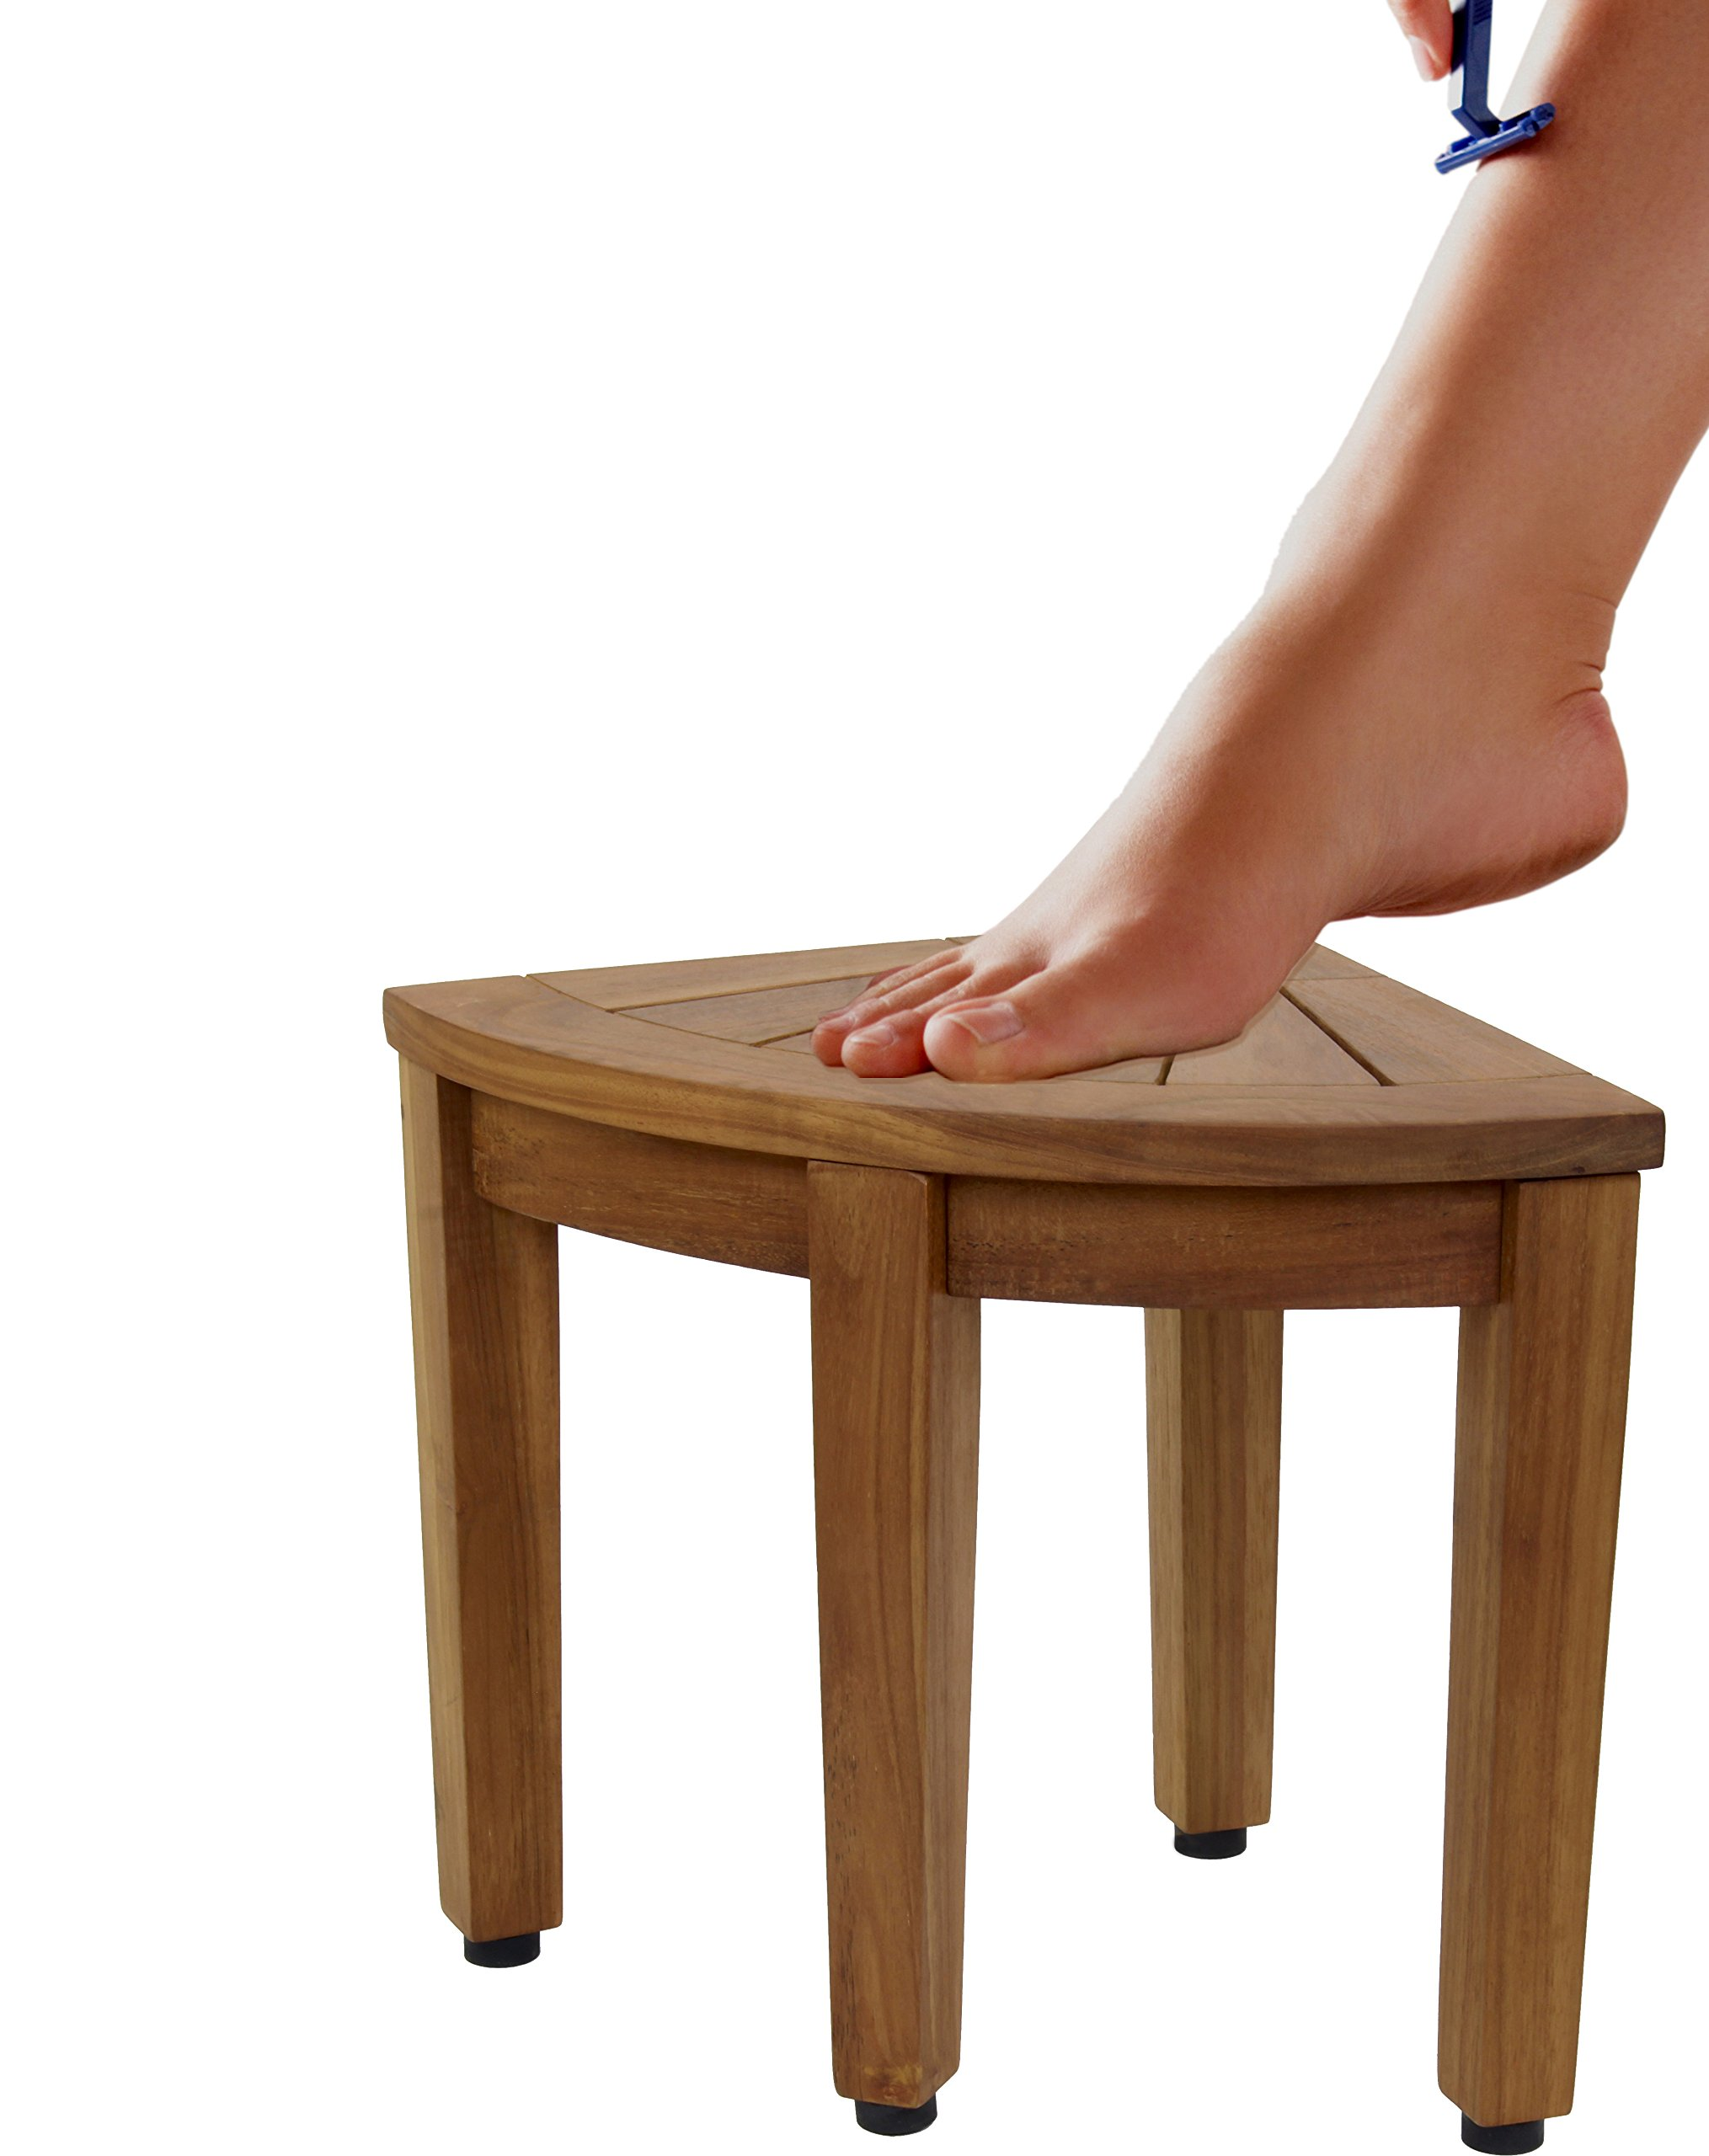 AquaTeak 12'' Kai OptiAREA Corner Teak Shaving & Washing Foot Rests